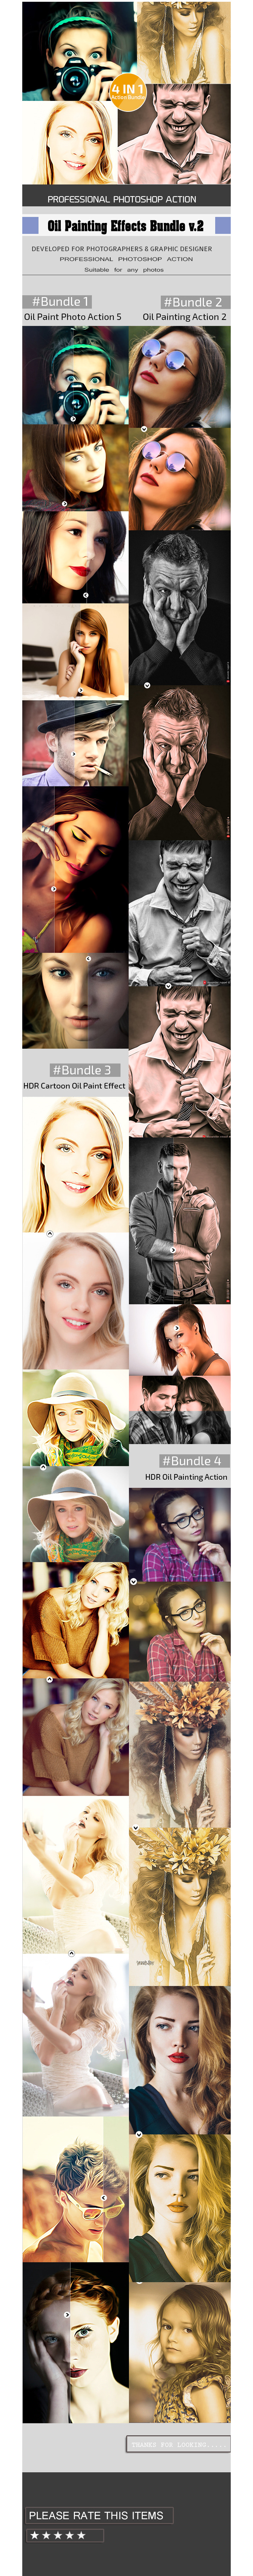 graphicriver_4_in_1_oil_painting_effects_bundle_vol2_12580490